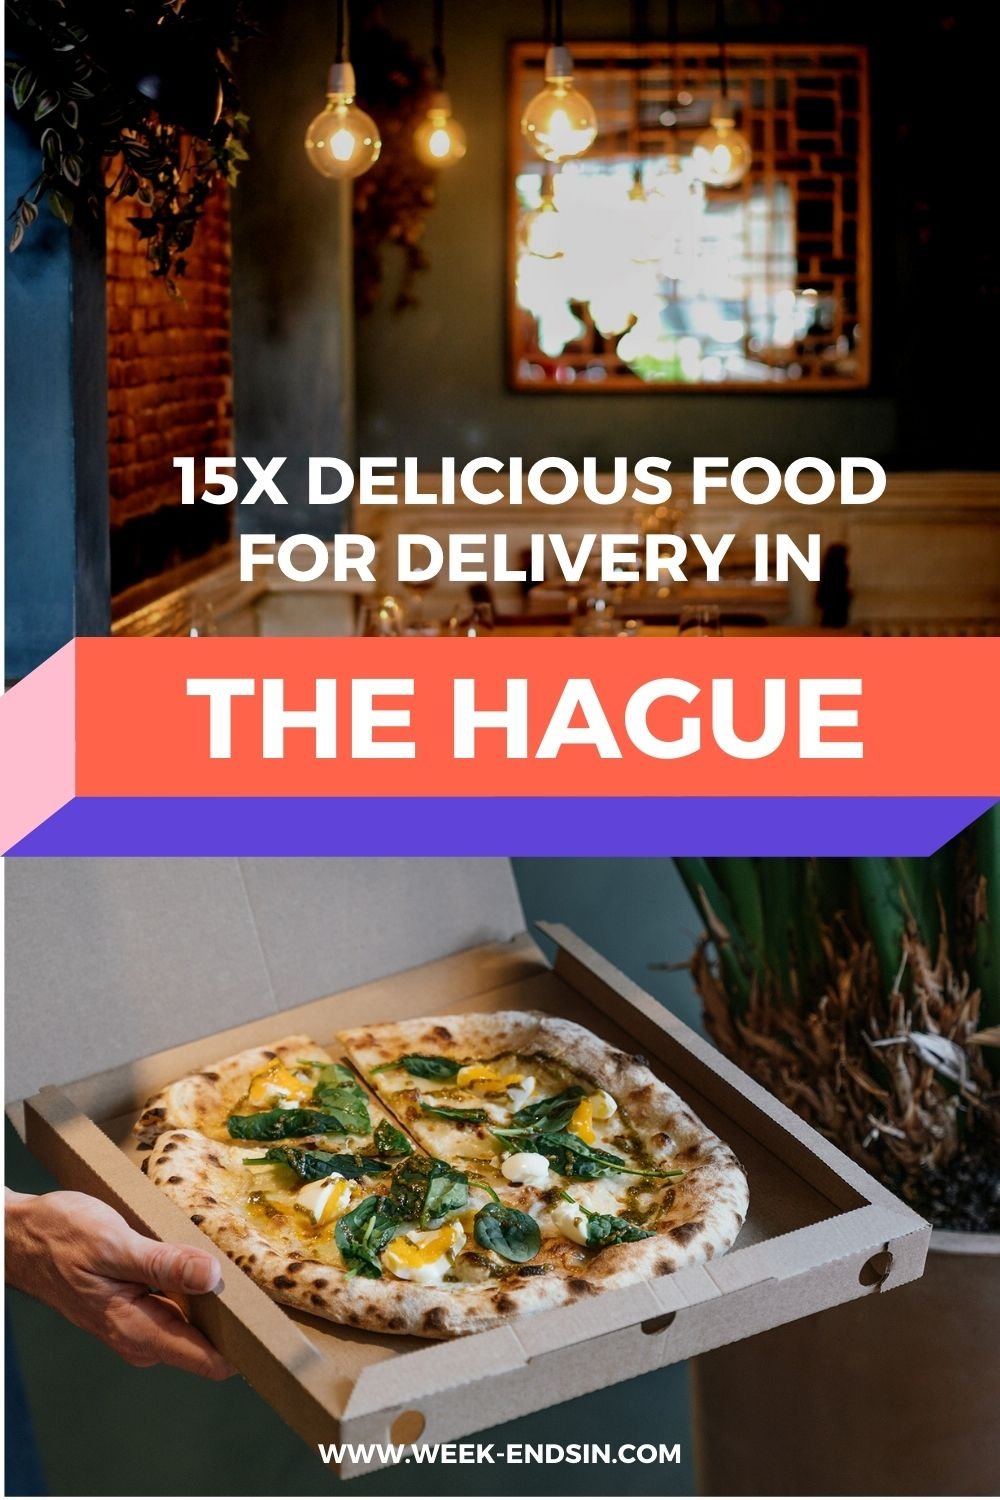 Want to stay on your sofa while enjoying food from your favourite restaurant? Here we share some amazing hotspots in The Hague that deliver food!